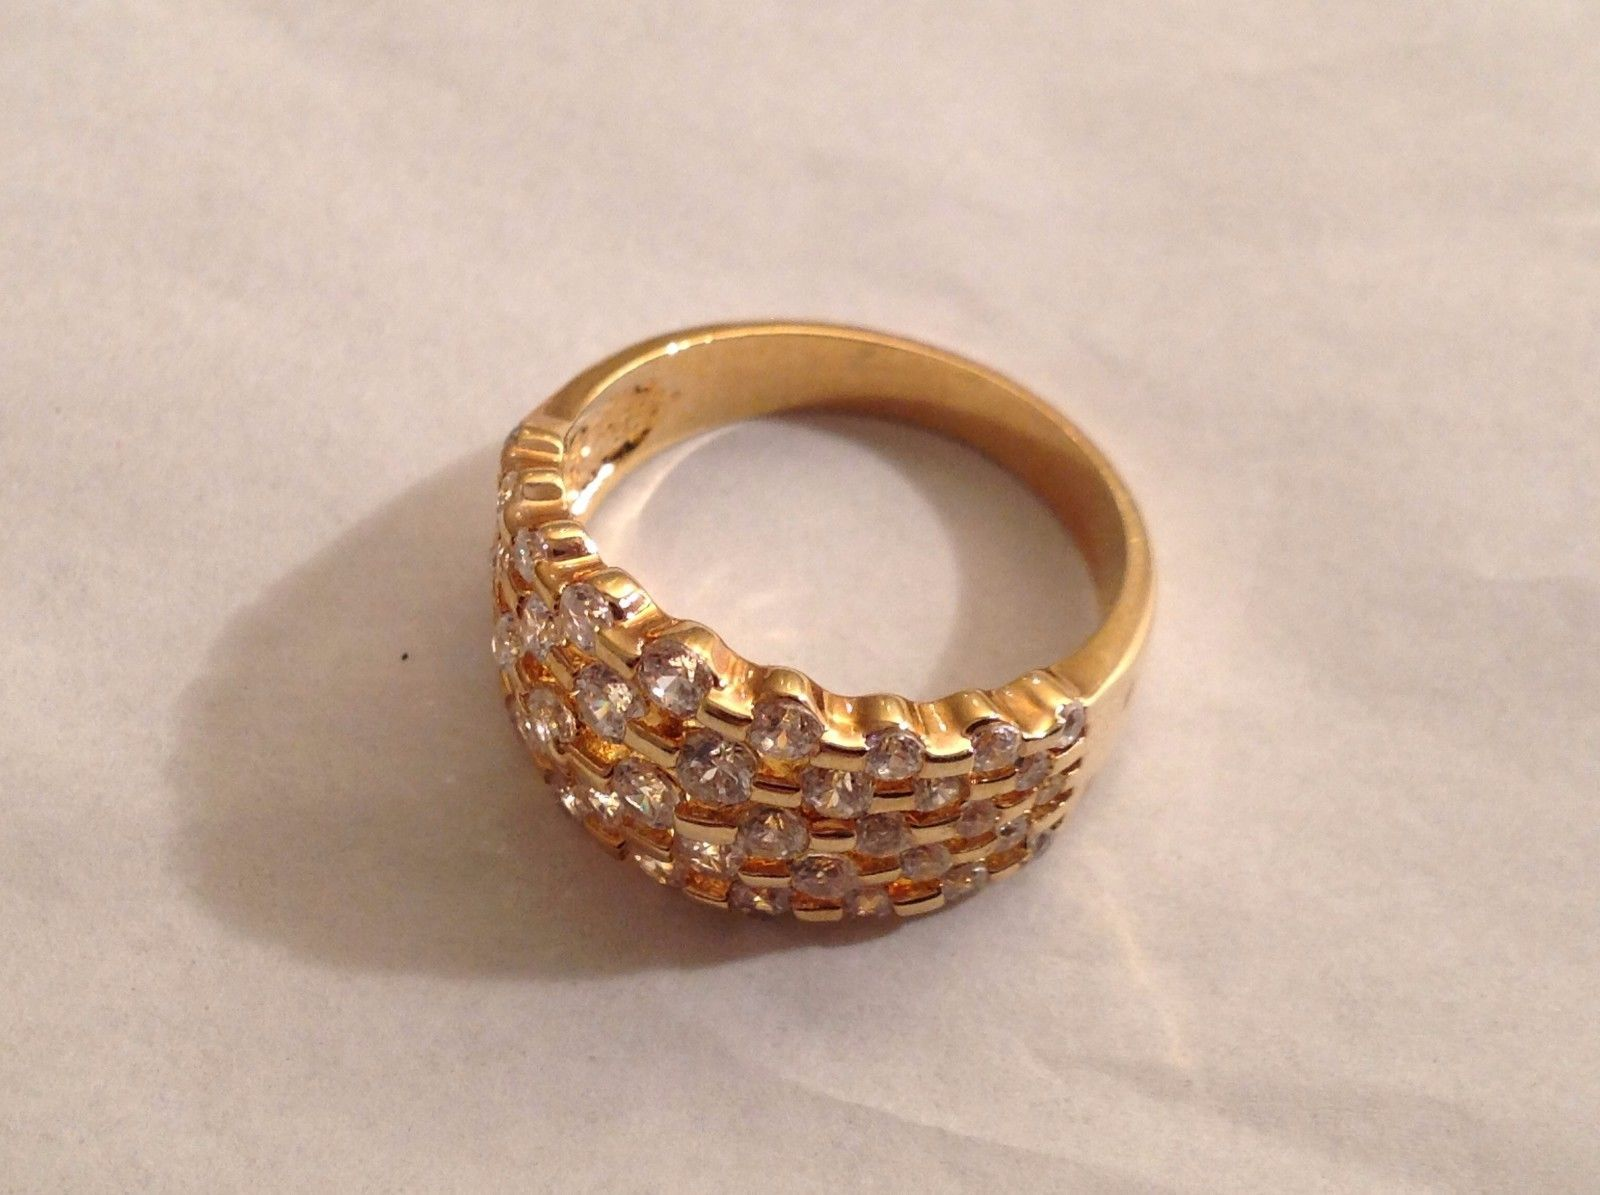 NEW Geranium Gold Toned Ring With Many Swarovski Clear Elements Size 10